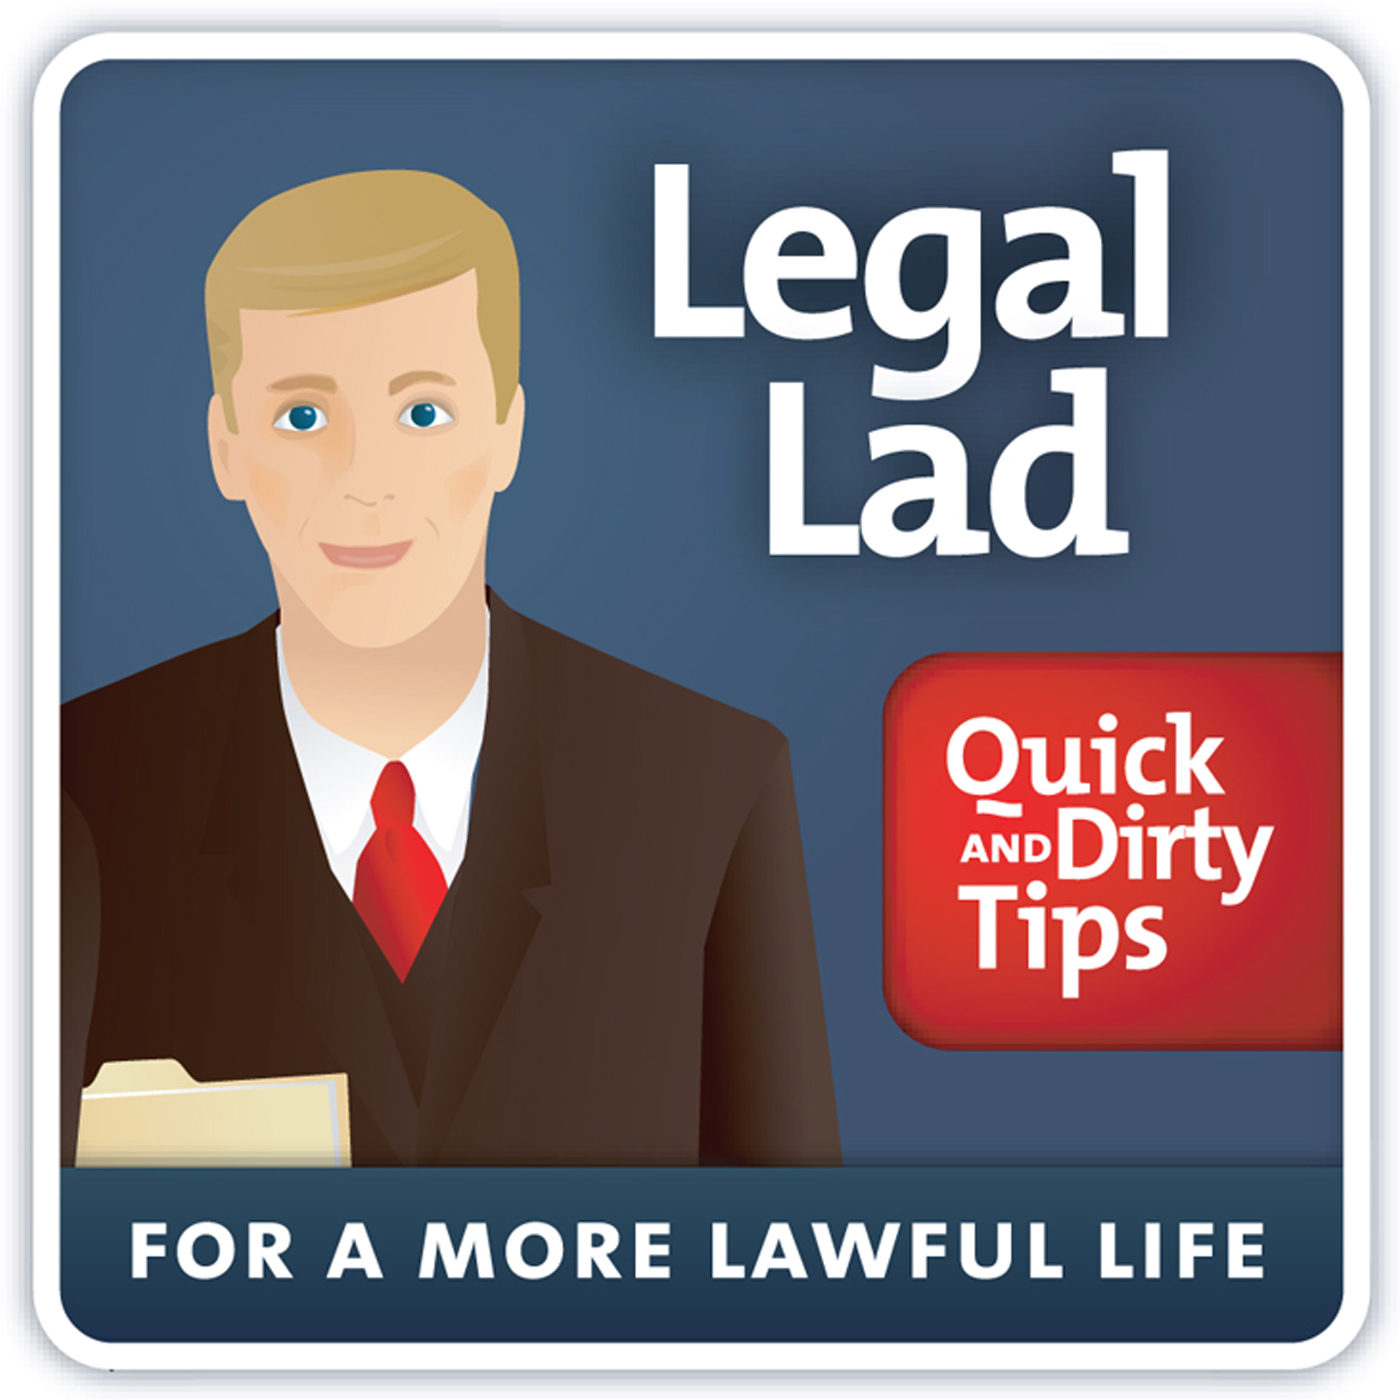 Legal Lad's Quick and Dirty Tips for a More Lawful Life